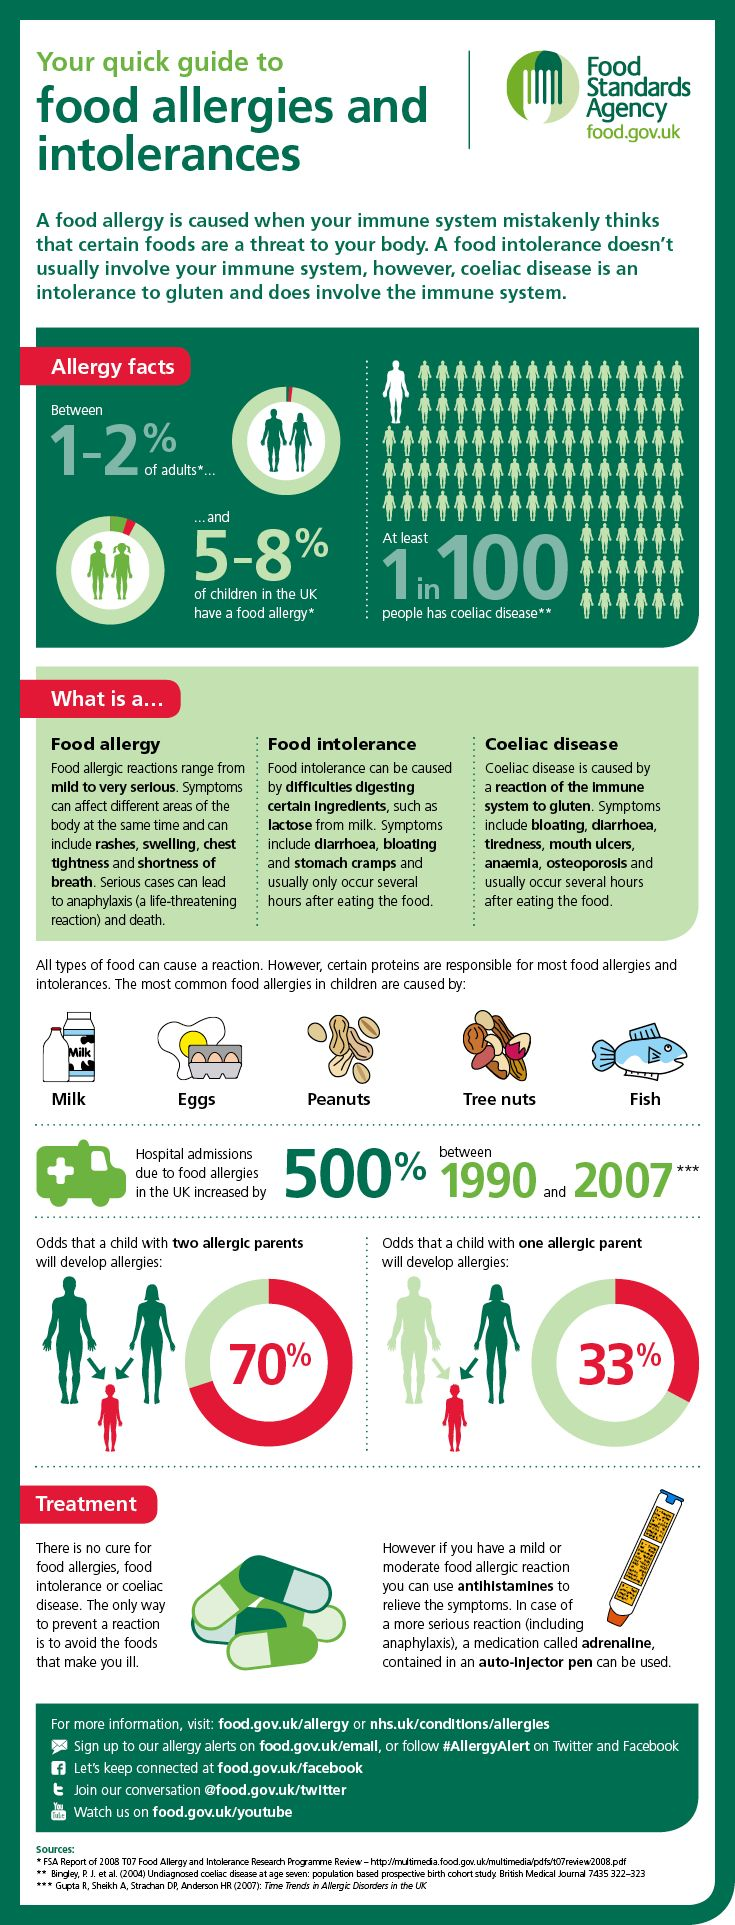 Fonte: Food Standards Agency (Reino Unido)